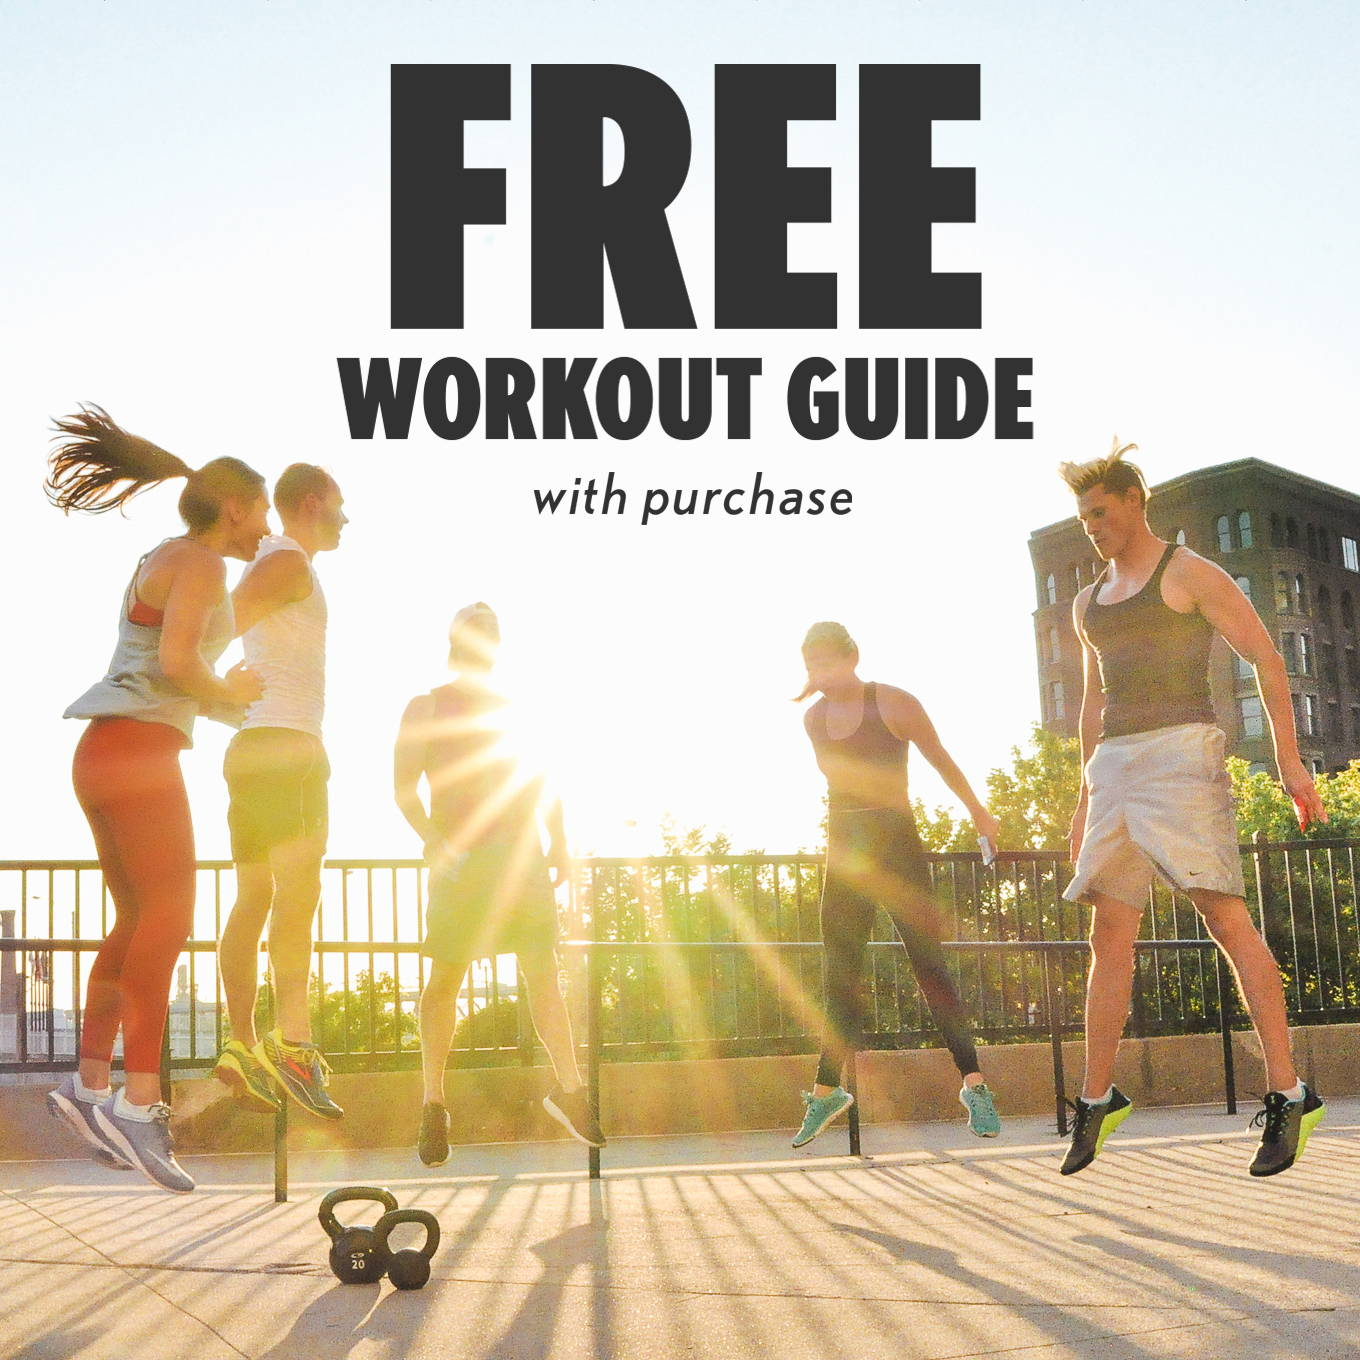 Free Workout Guide with Purchase